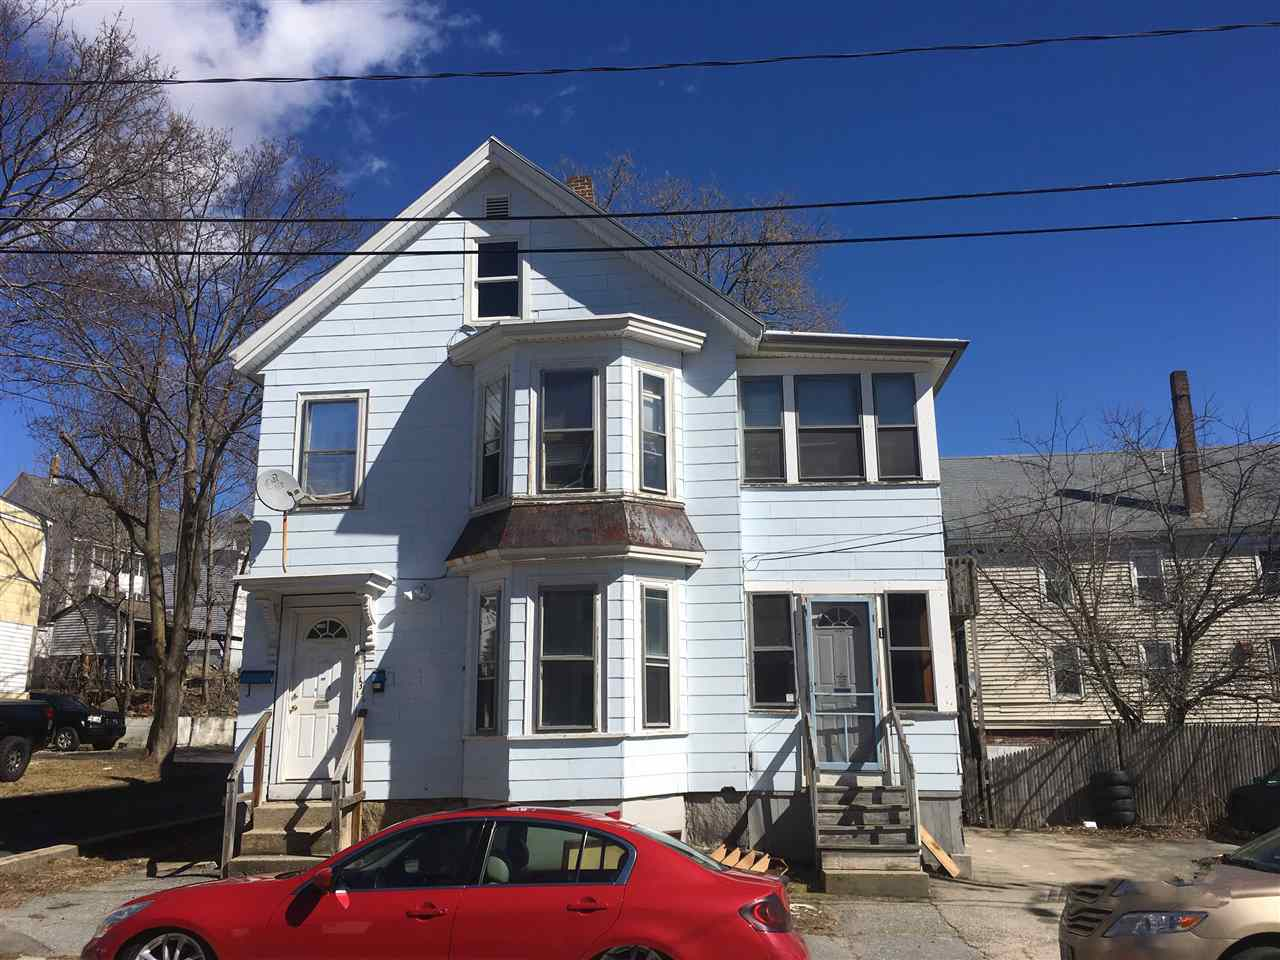 Nashua nh real estate multi family homes for sale page 1 for Multifamily house